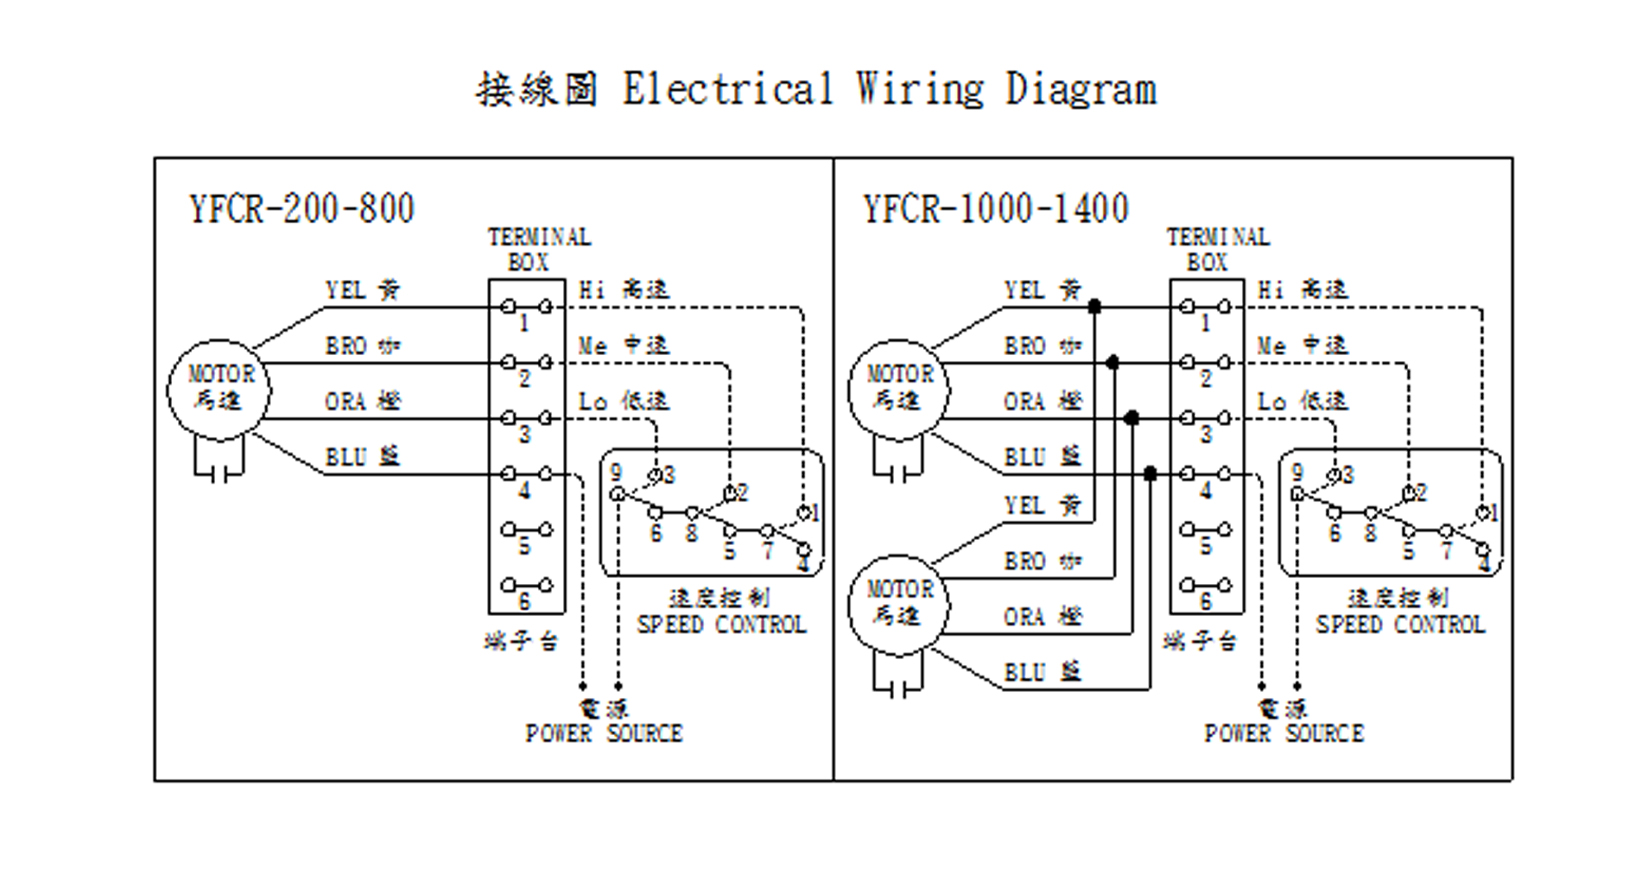 Electric Wire Diagram : Auma wiring diagrams primary metering